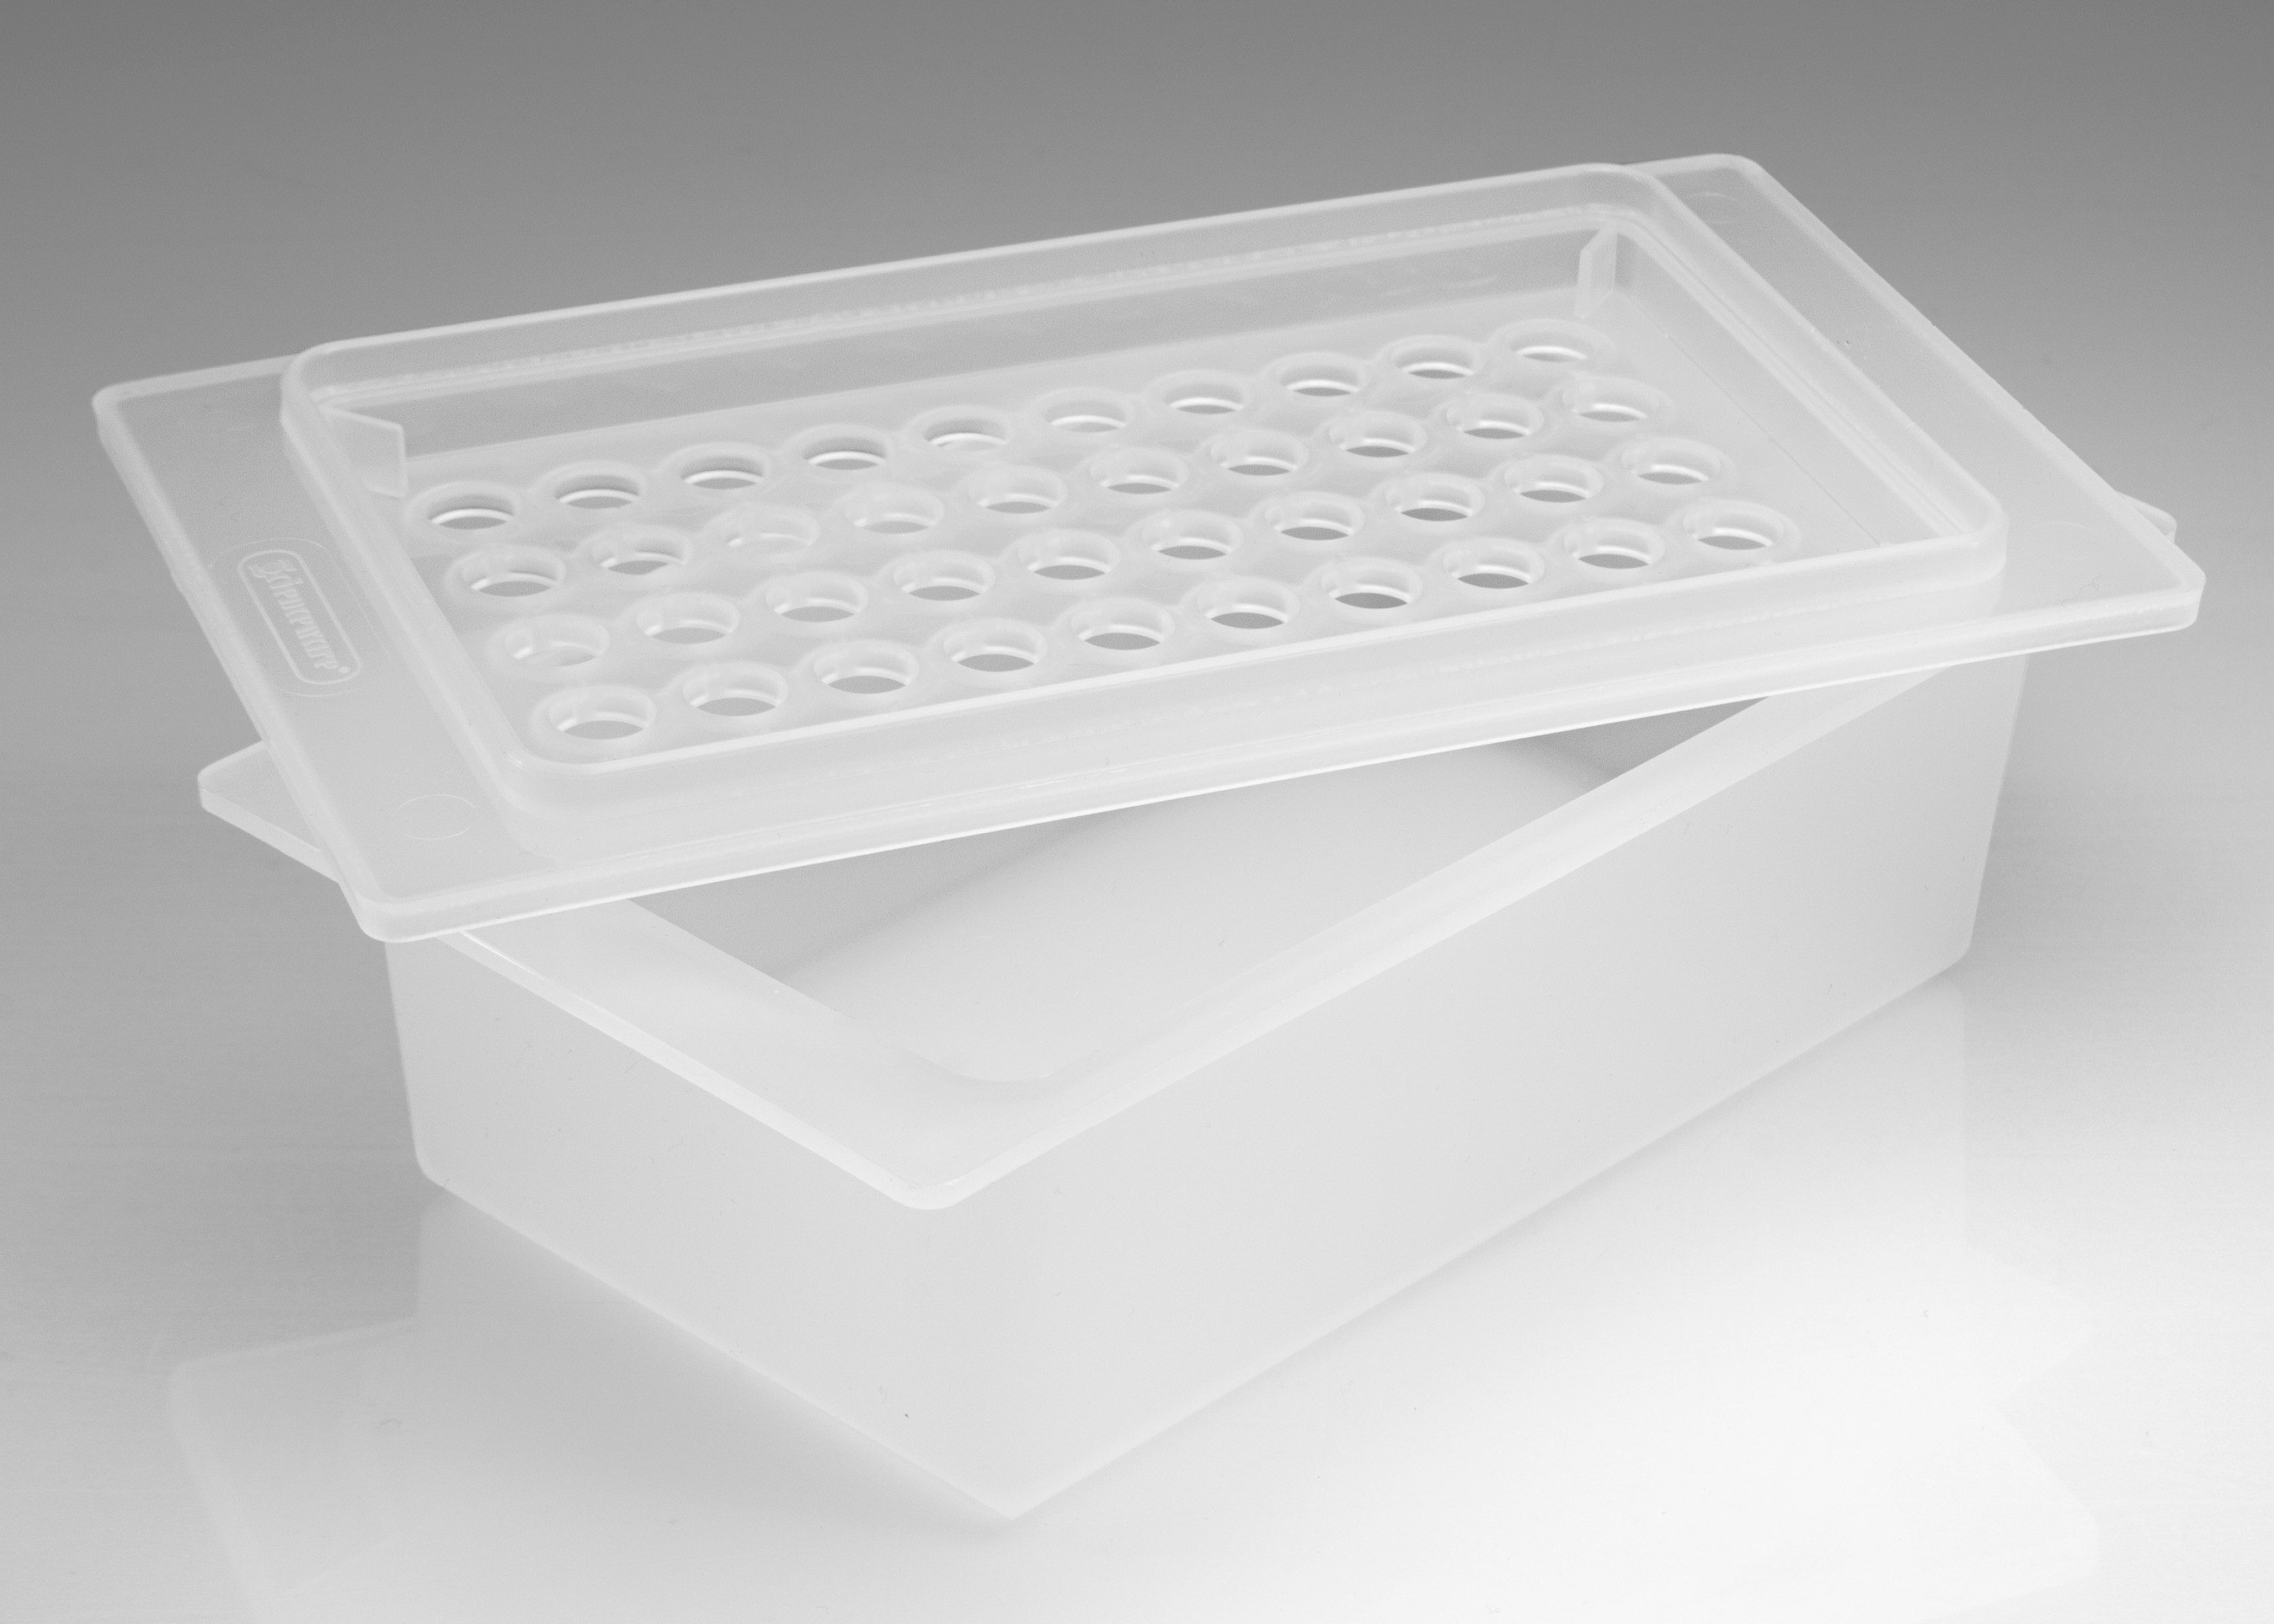 SP Bel-Art Microcentrifuge Tube Ice Rack/Tray; For 1.5ml Tubes, 50 Places